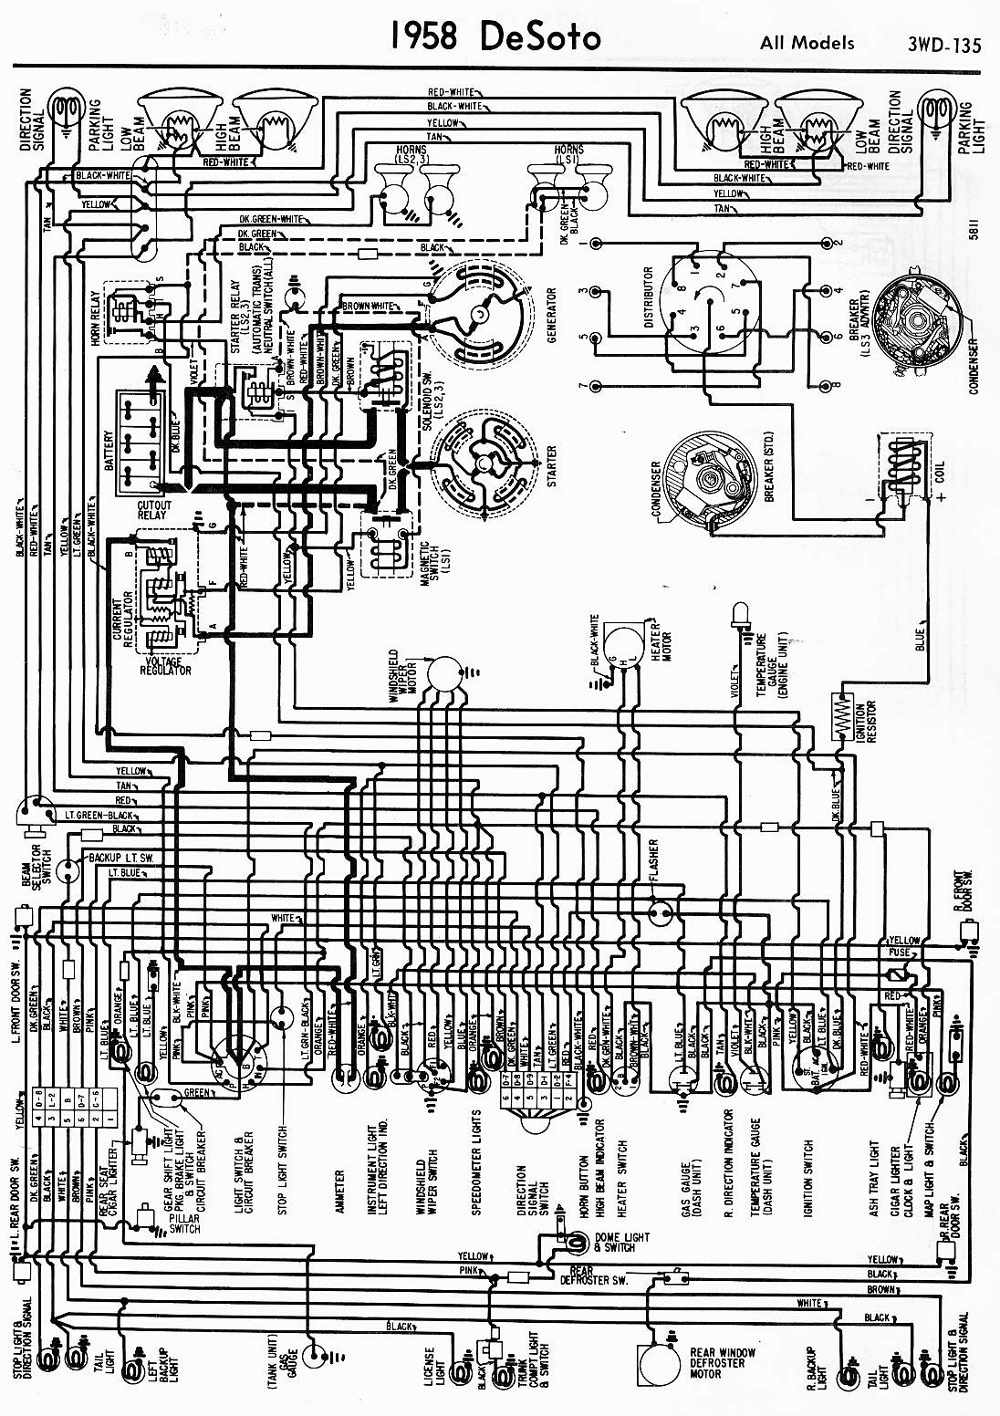 Funky Ford Golden Jubilee Wiring Diagram Collection - Everything You ...